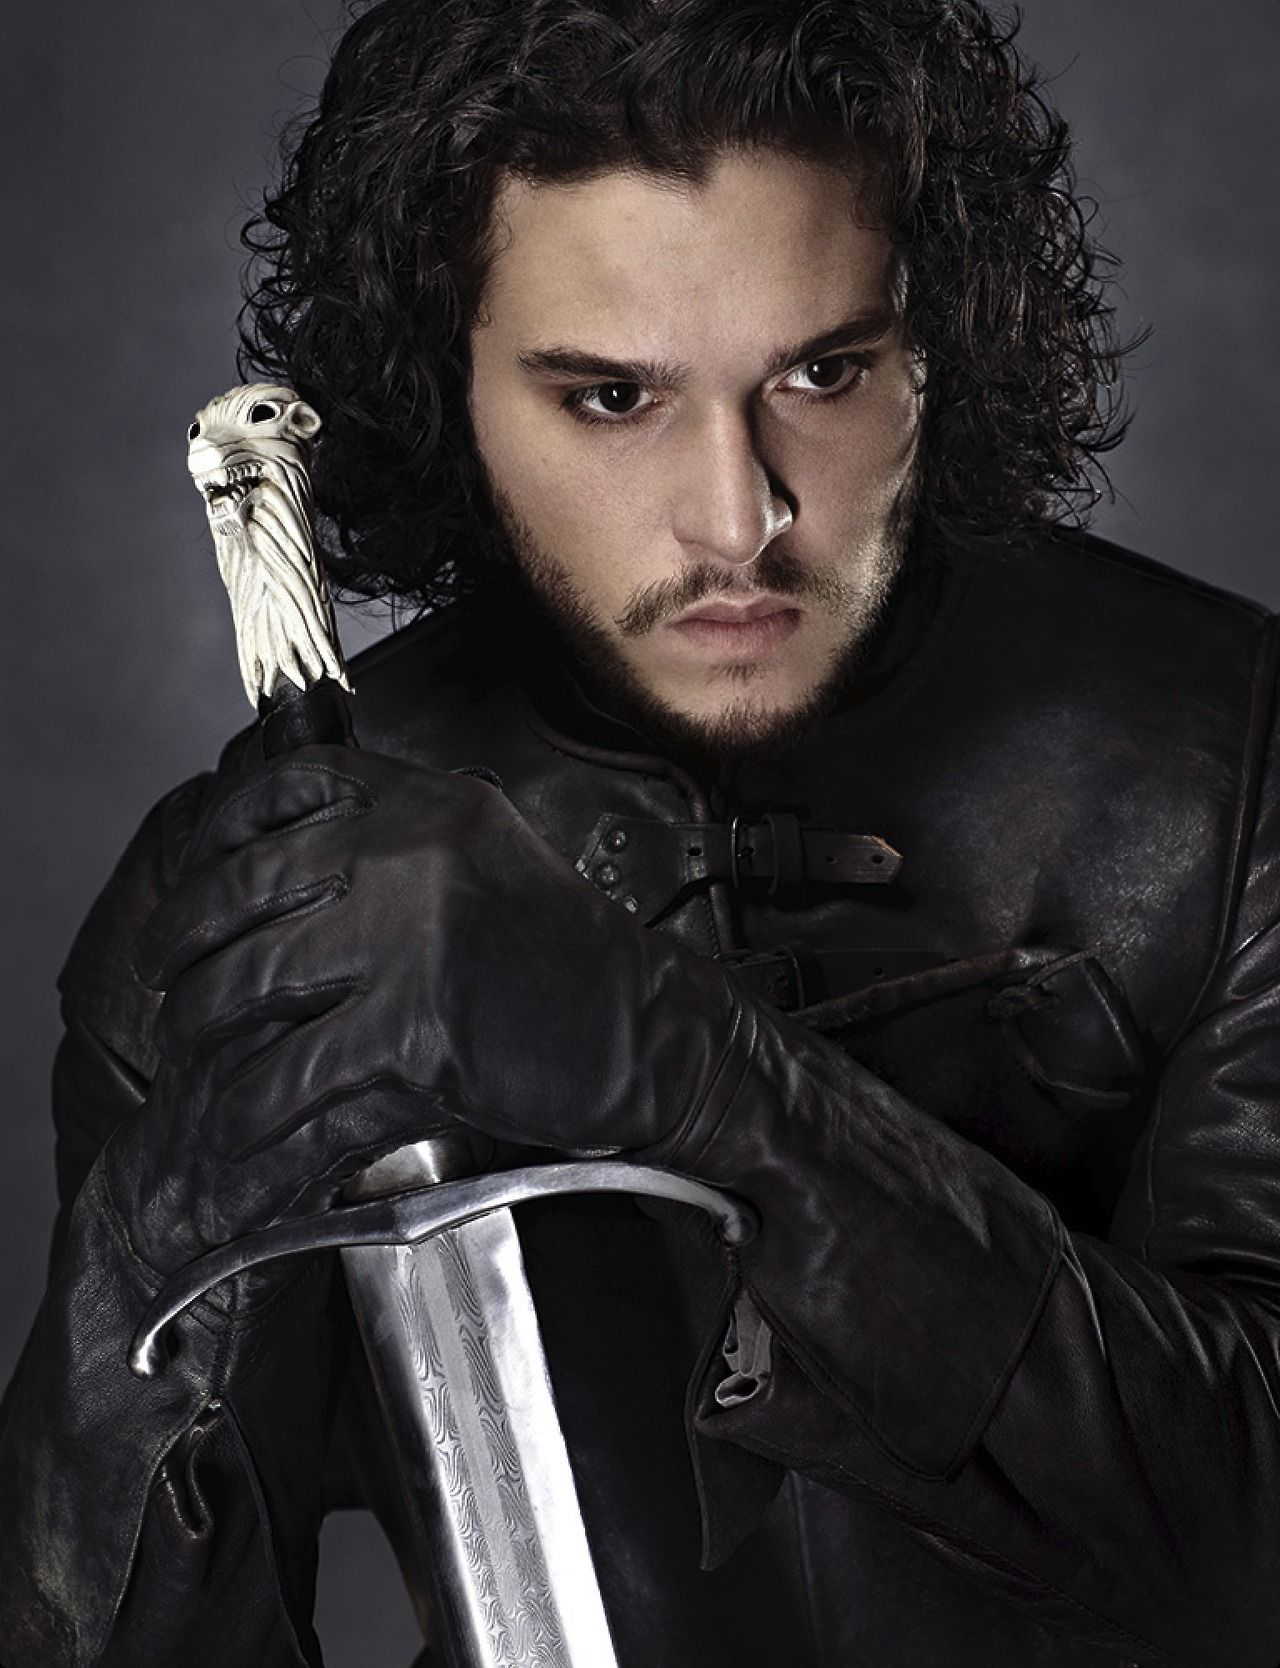 kit harington as jon snow game of thrones game of. Black Bedroom Furniture Sets. Home Design Ideas